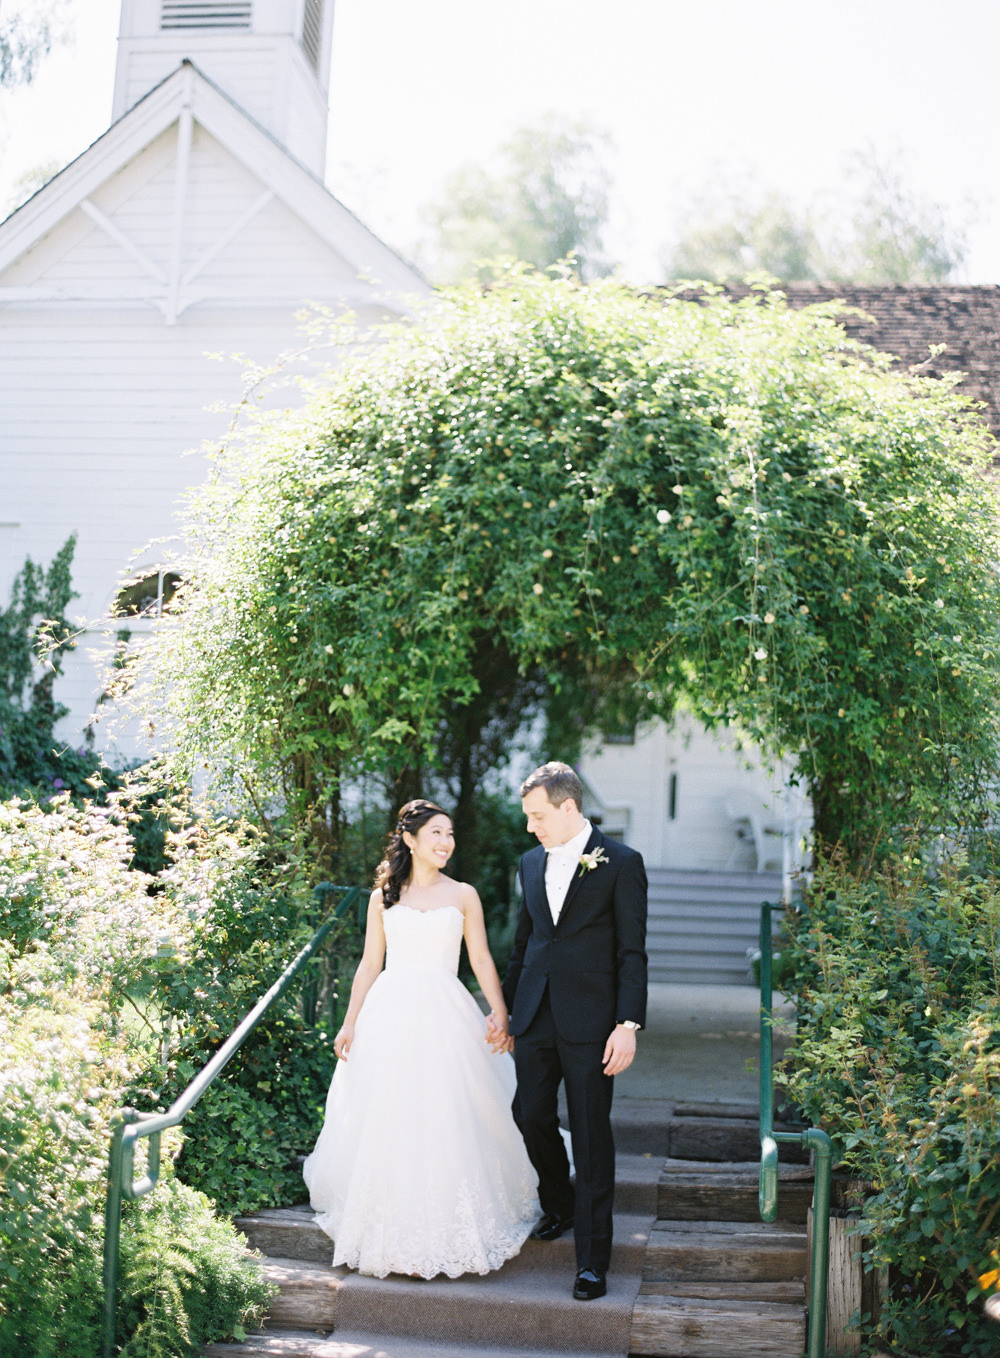 Romantic Garden Wedding in California | Style Me Pretty | Green Gables Estate | Classic Romantic Bride and groom | Southern California Film photographer | Whiskers and Willow Photography